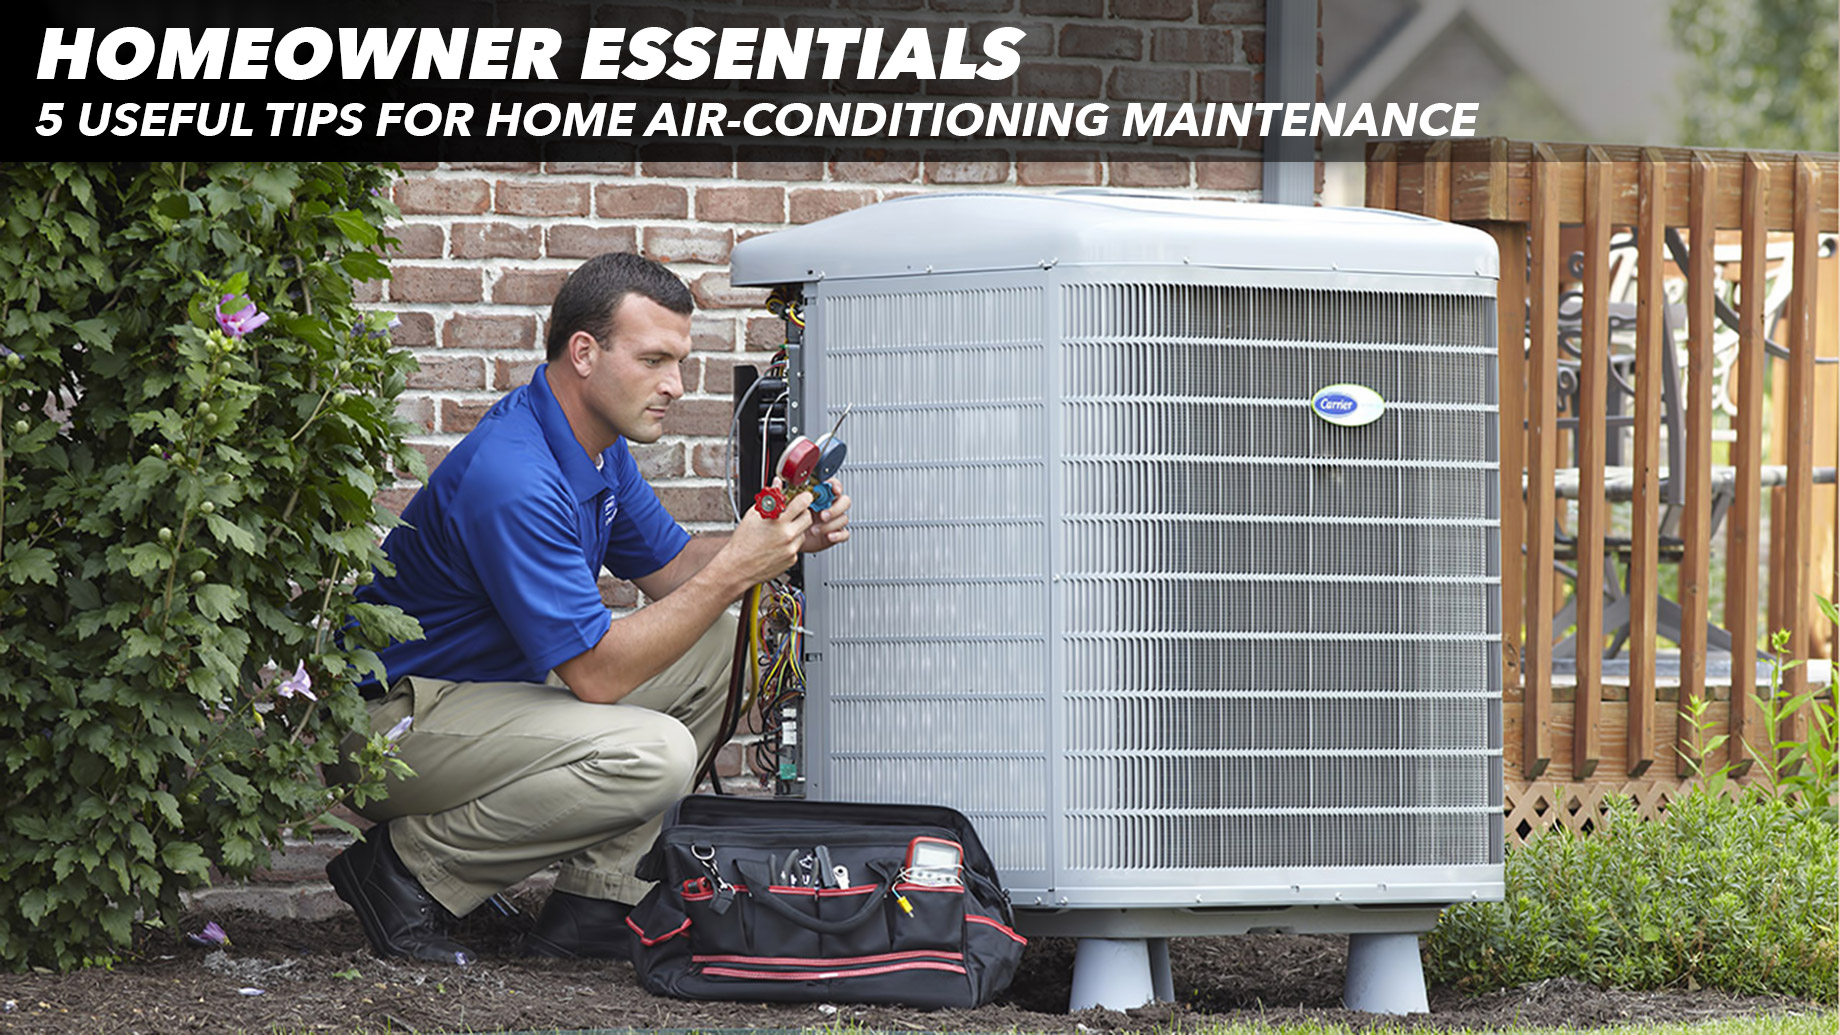 Homeowner Essentials - 5 Useful Tips for Home Air-Conditioning Maintenance